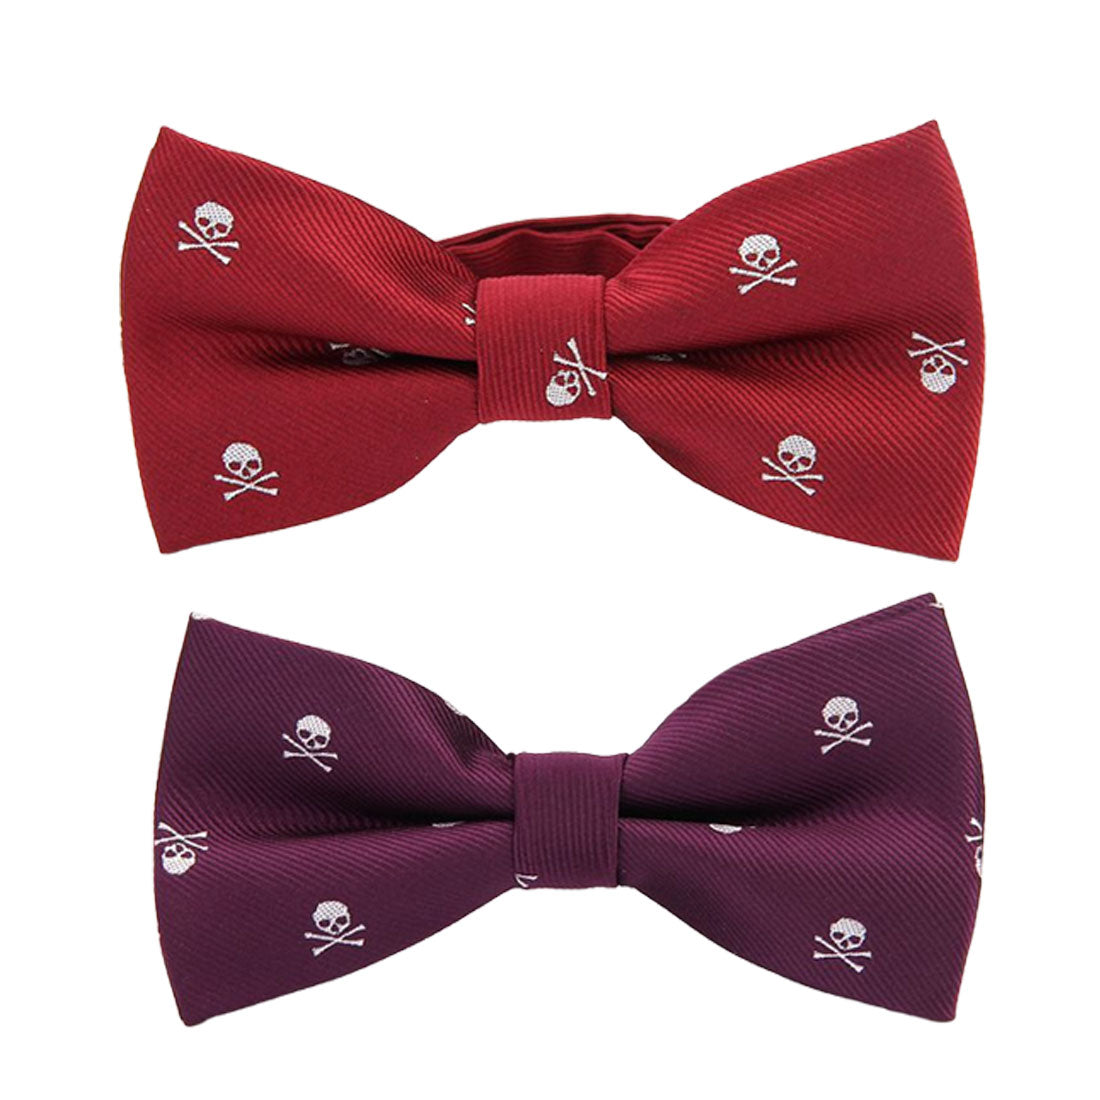 Top Sell Novelty Men's Polyester Silk Bow Tie Skull Bowtie For Tuxedo Banquet New Design Bowknot Ties For Wedding Groom-novahe